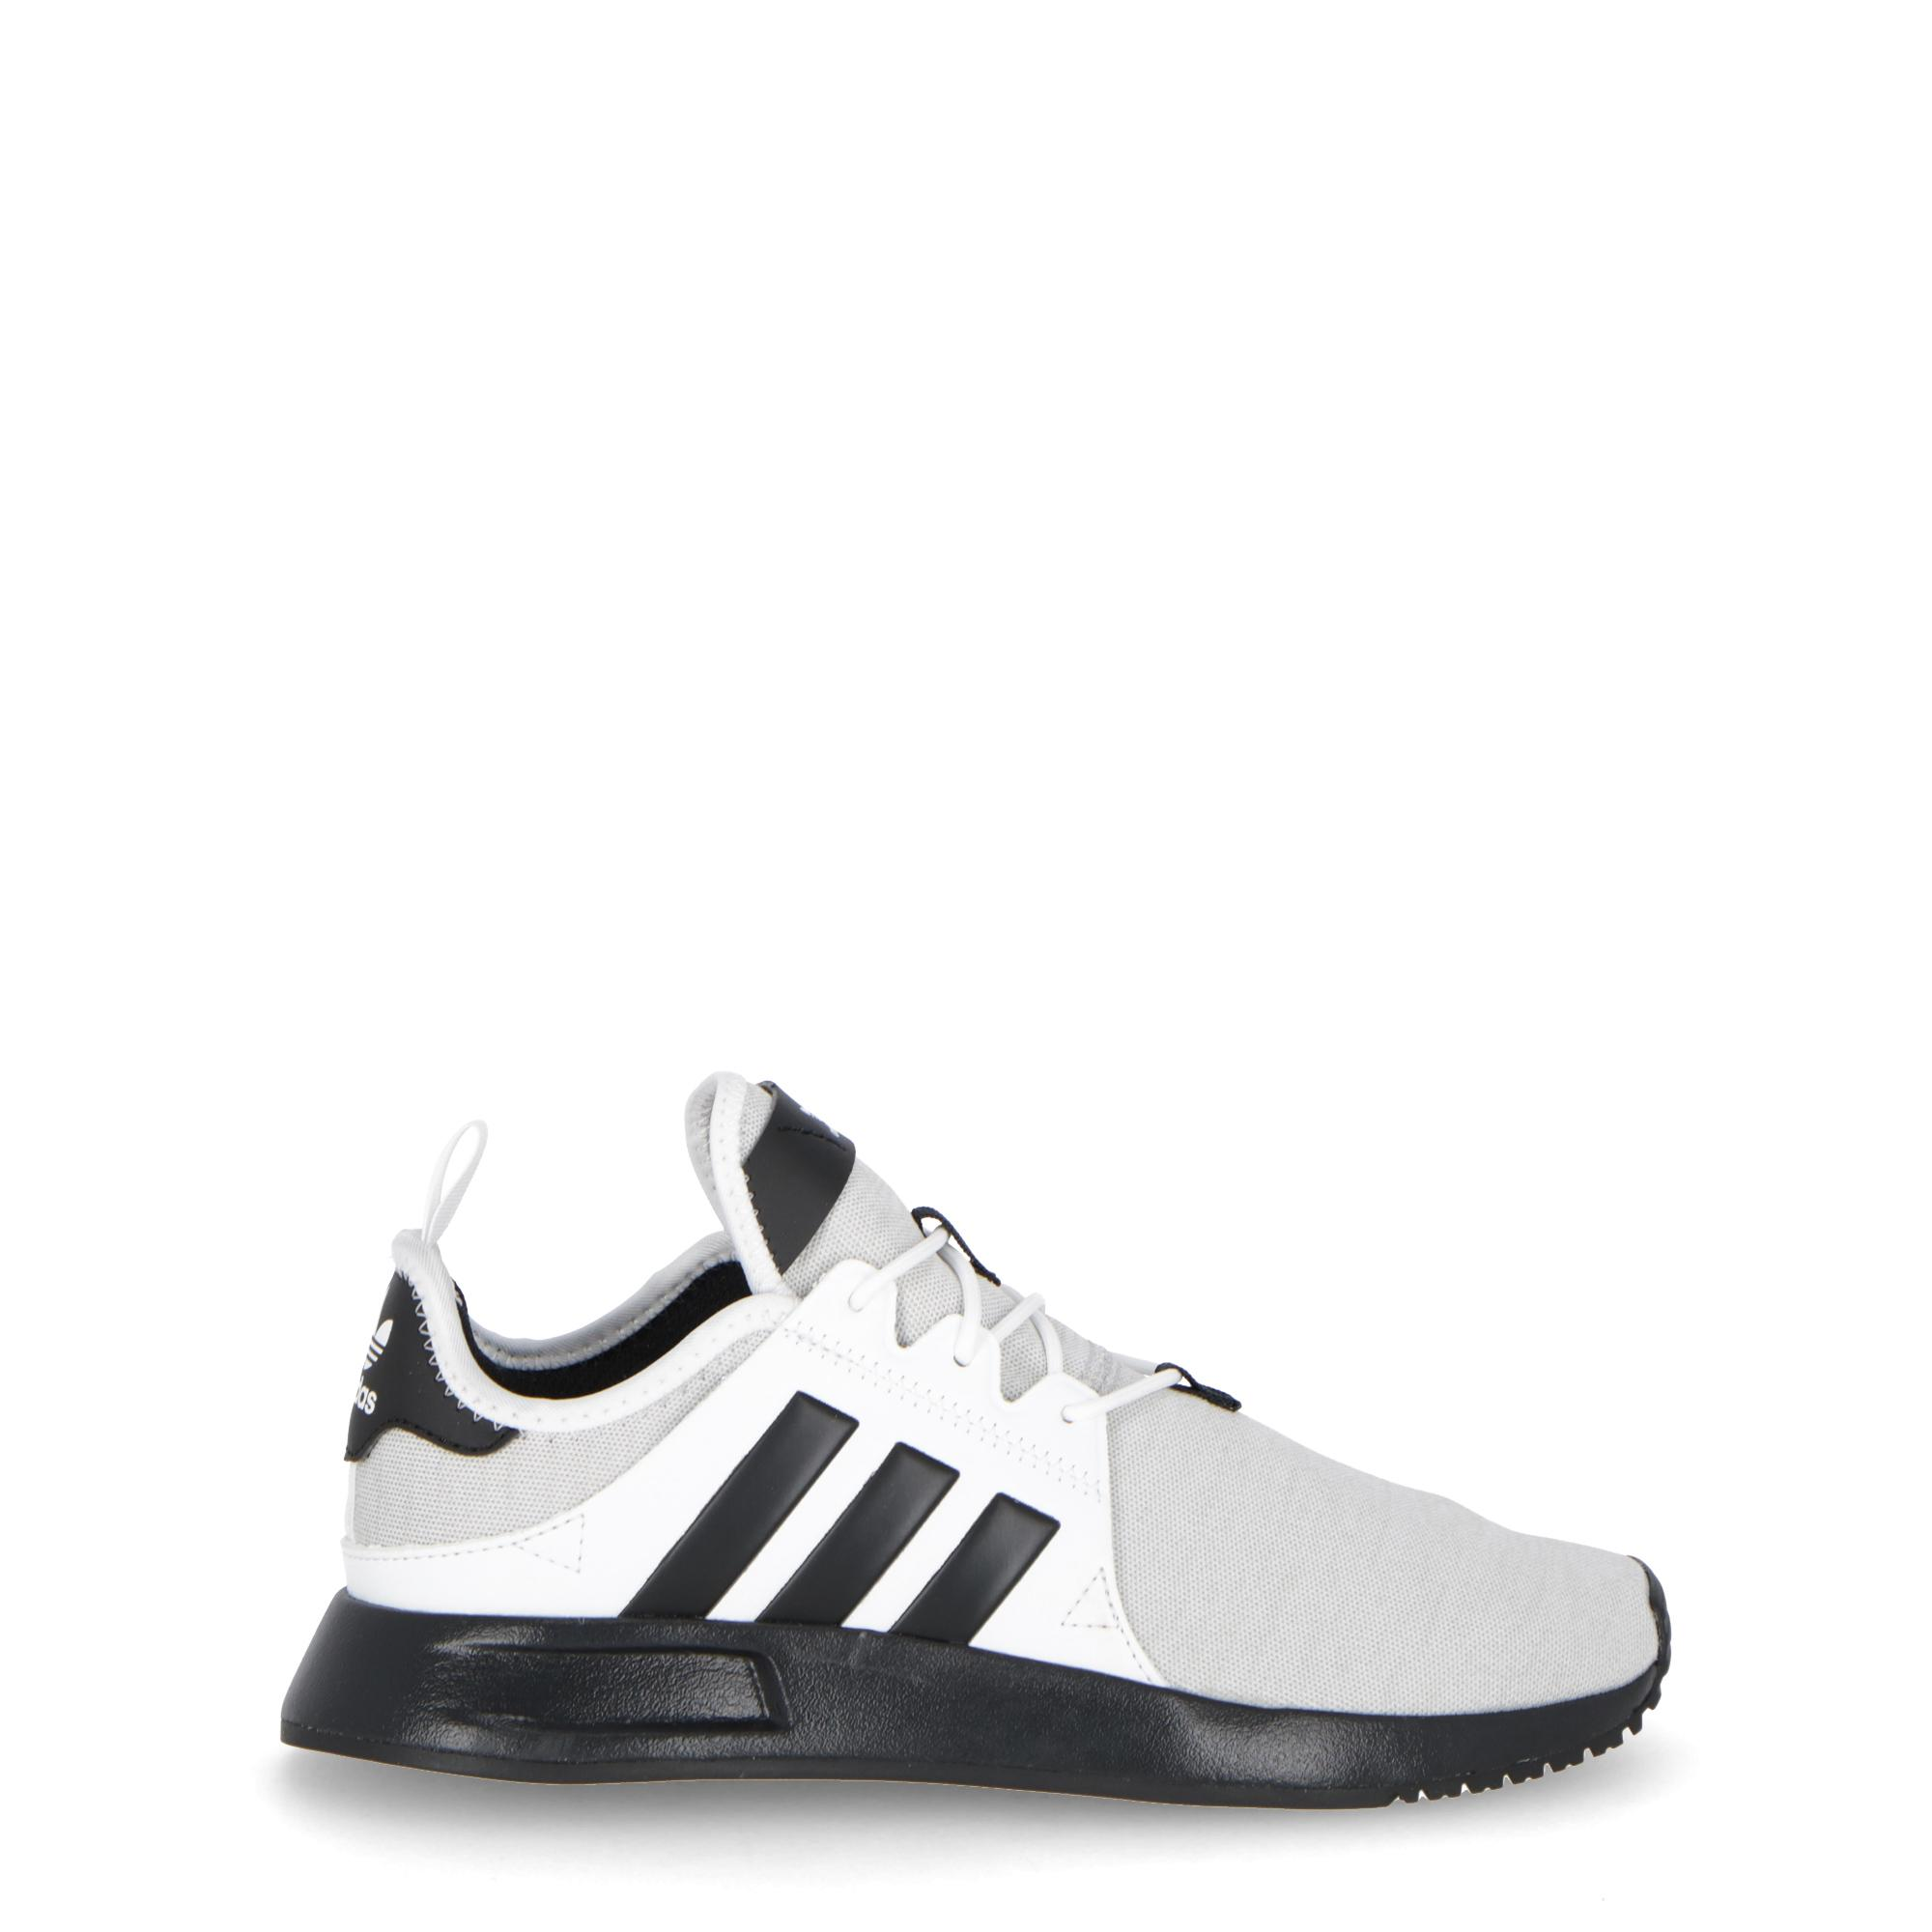 8566d957 Adidas X-plr - Kids Grey Black White | Treesse